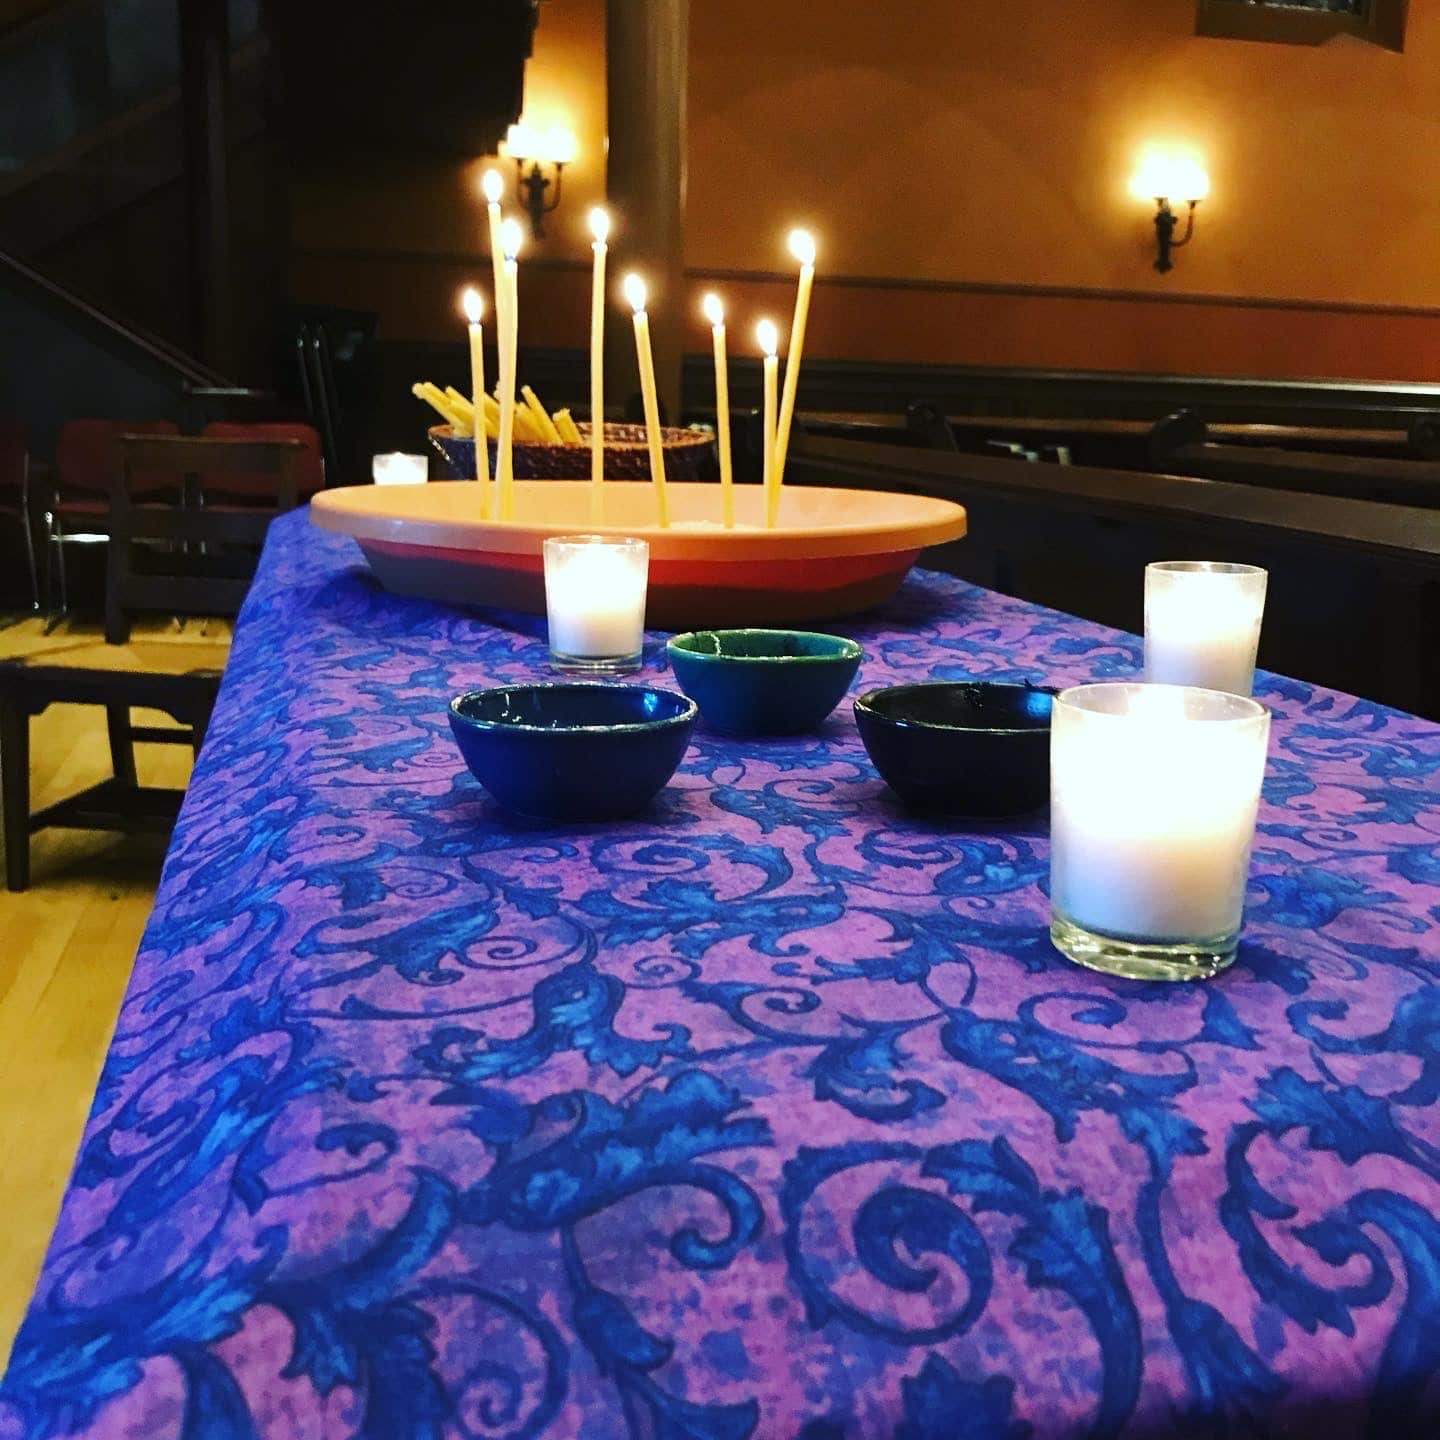 altar table with ashes and candles